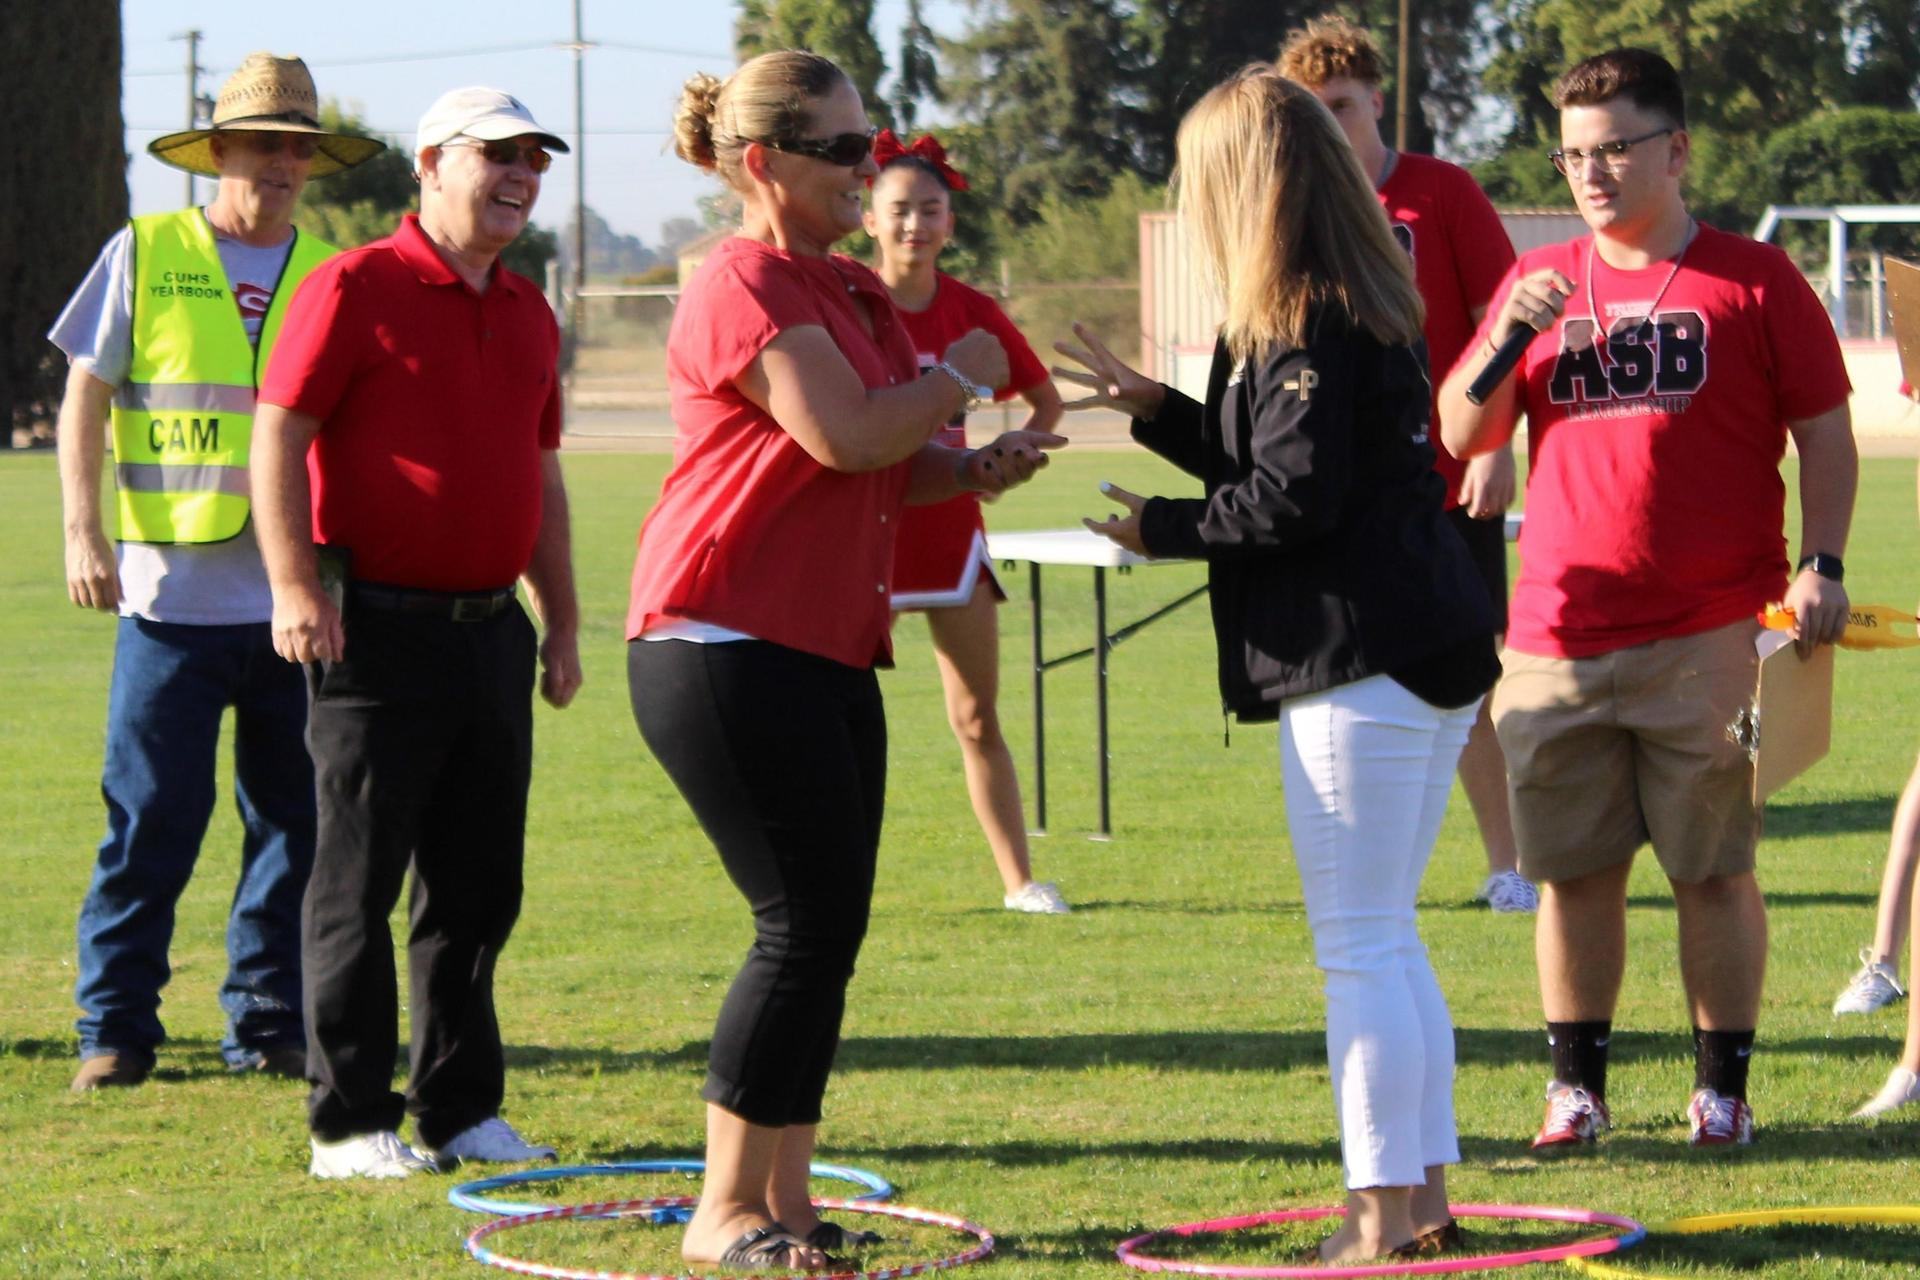 New teachers competing in a rally game